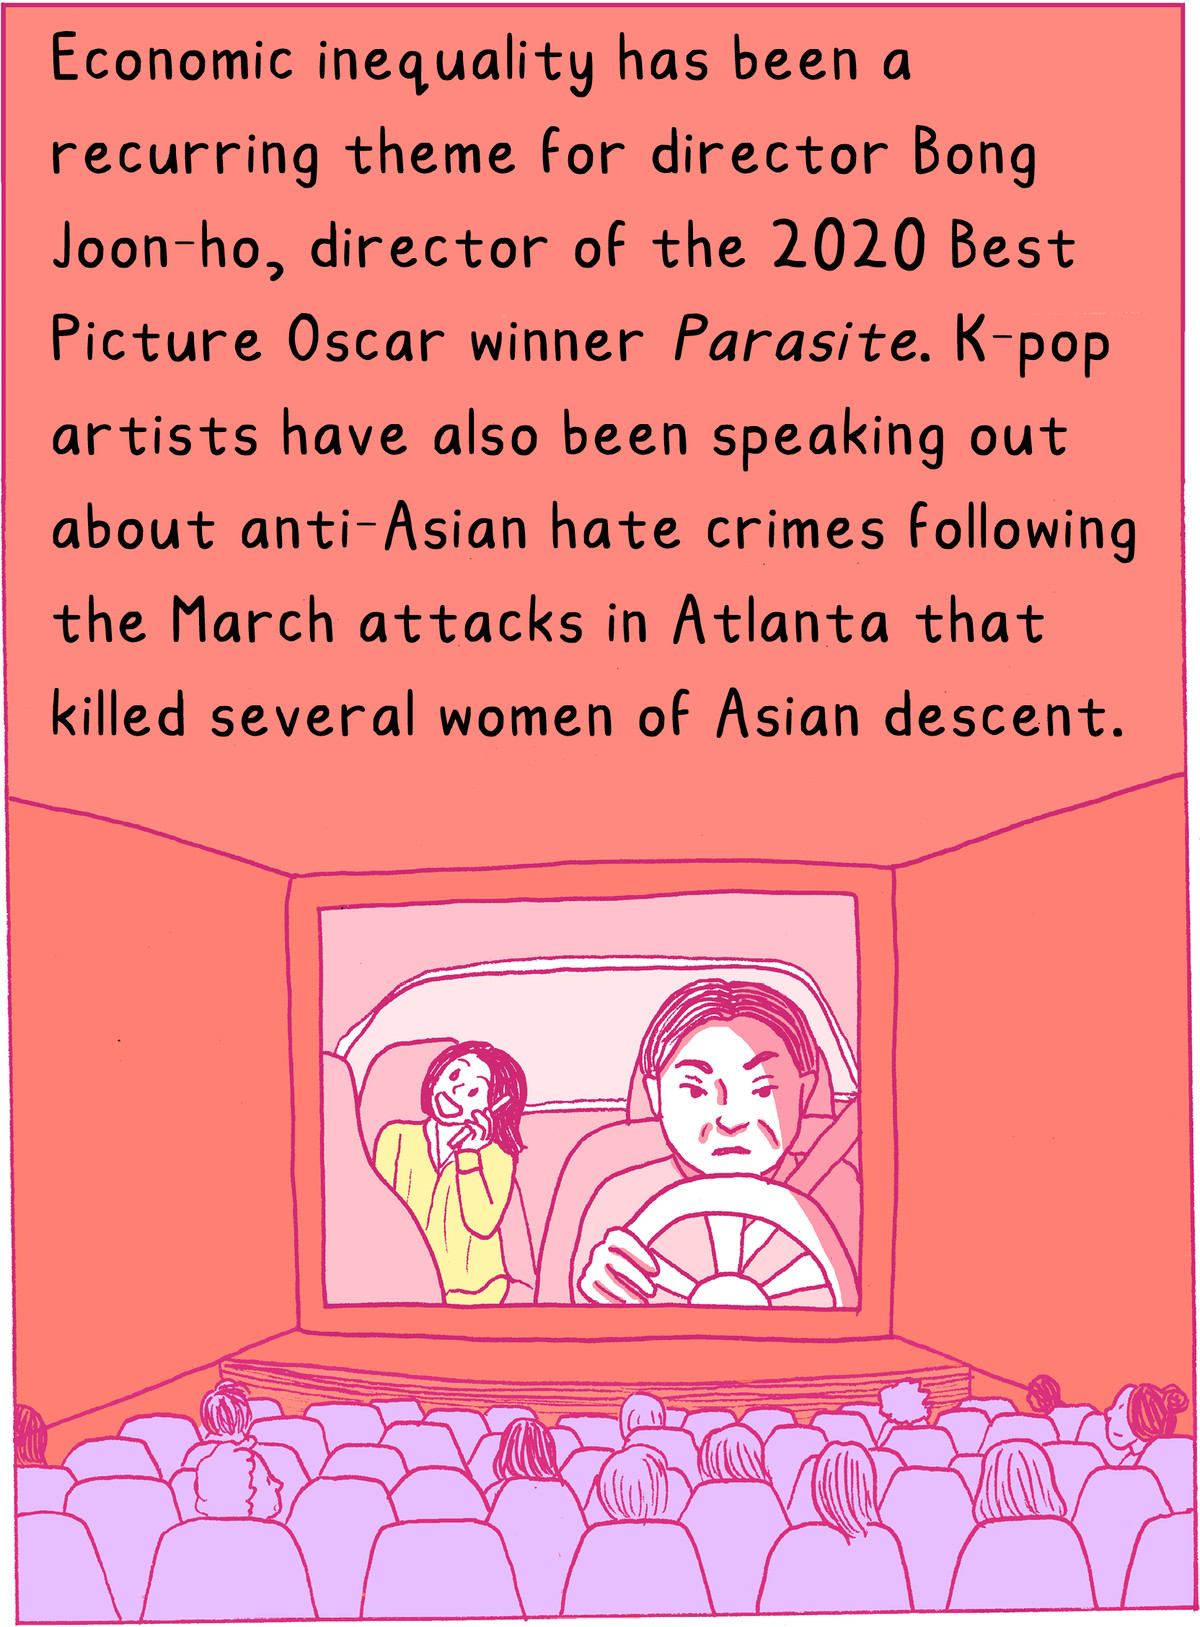 Economic inequality has been a recurring theme for director Bong Joon-ho, director of the 2020 Oscar-winner Parasite. K-pop artists have also been speaking out about anti-Asian hate crimes following the Atlanta attacks.